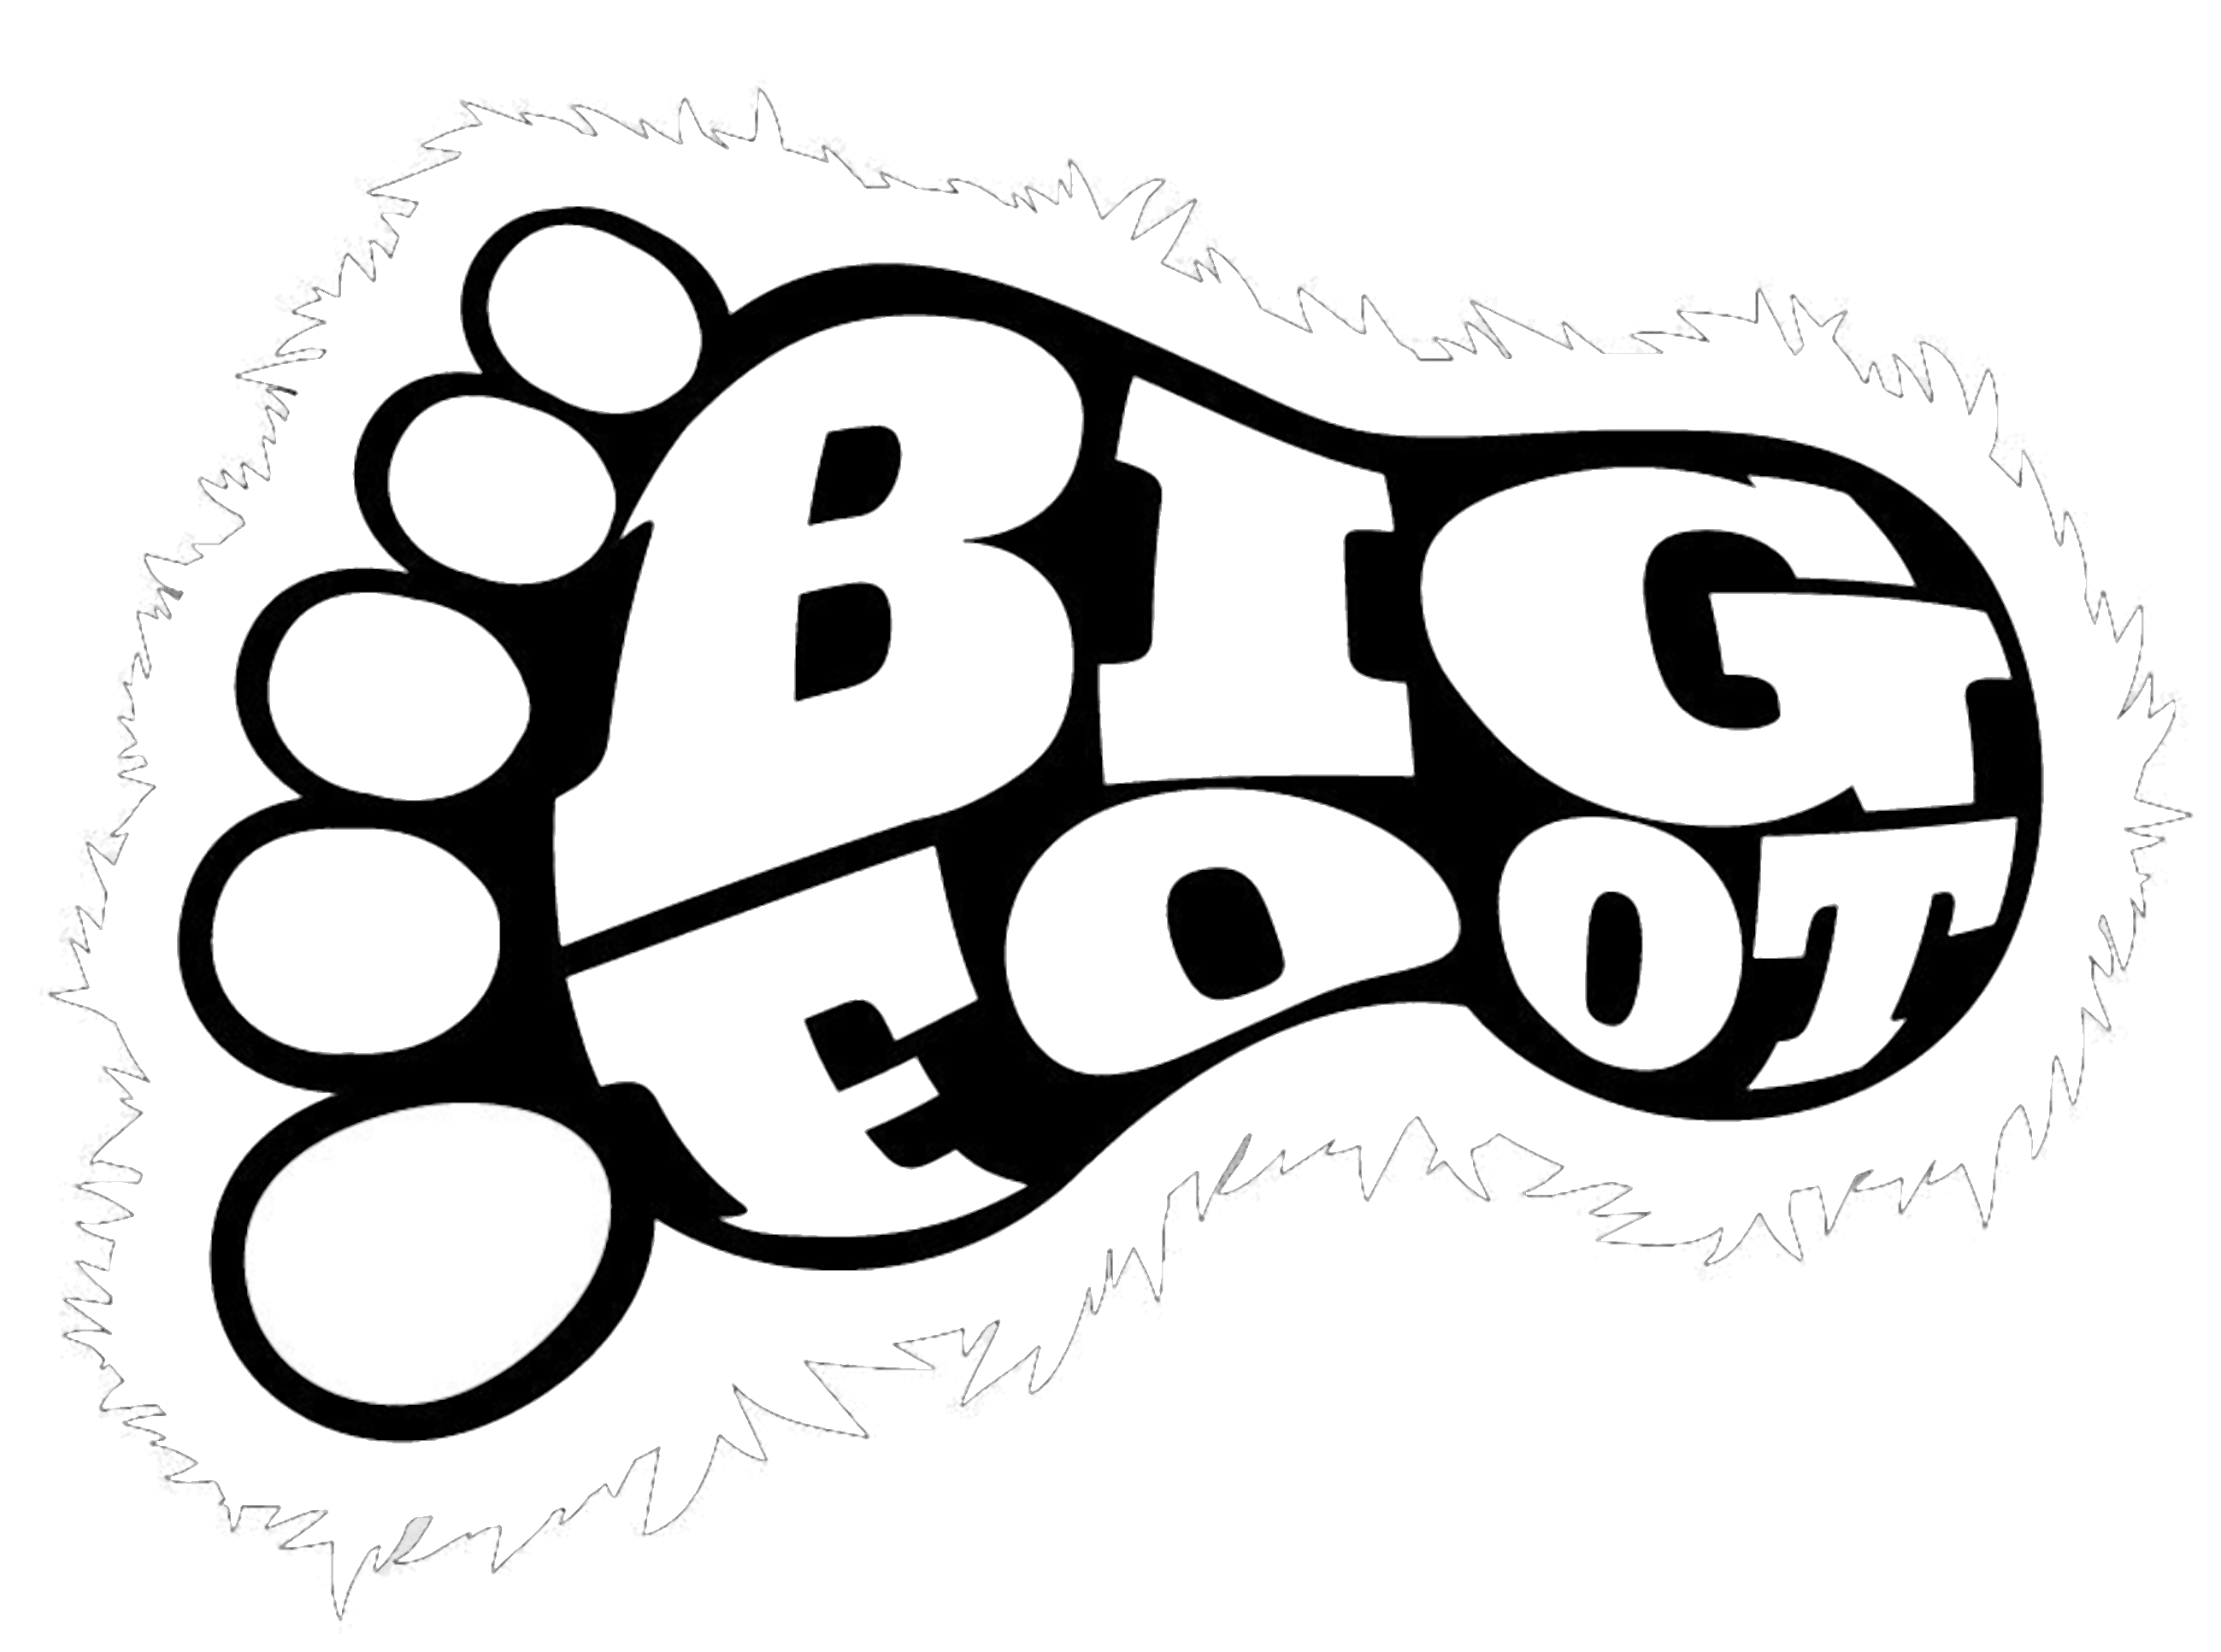 Image result for Image of Bigfoots foot print